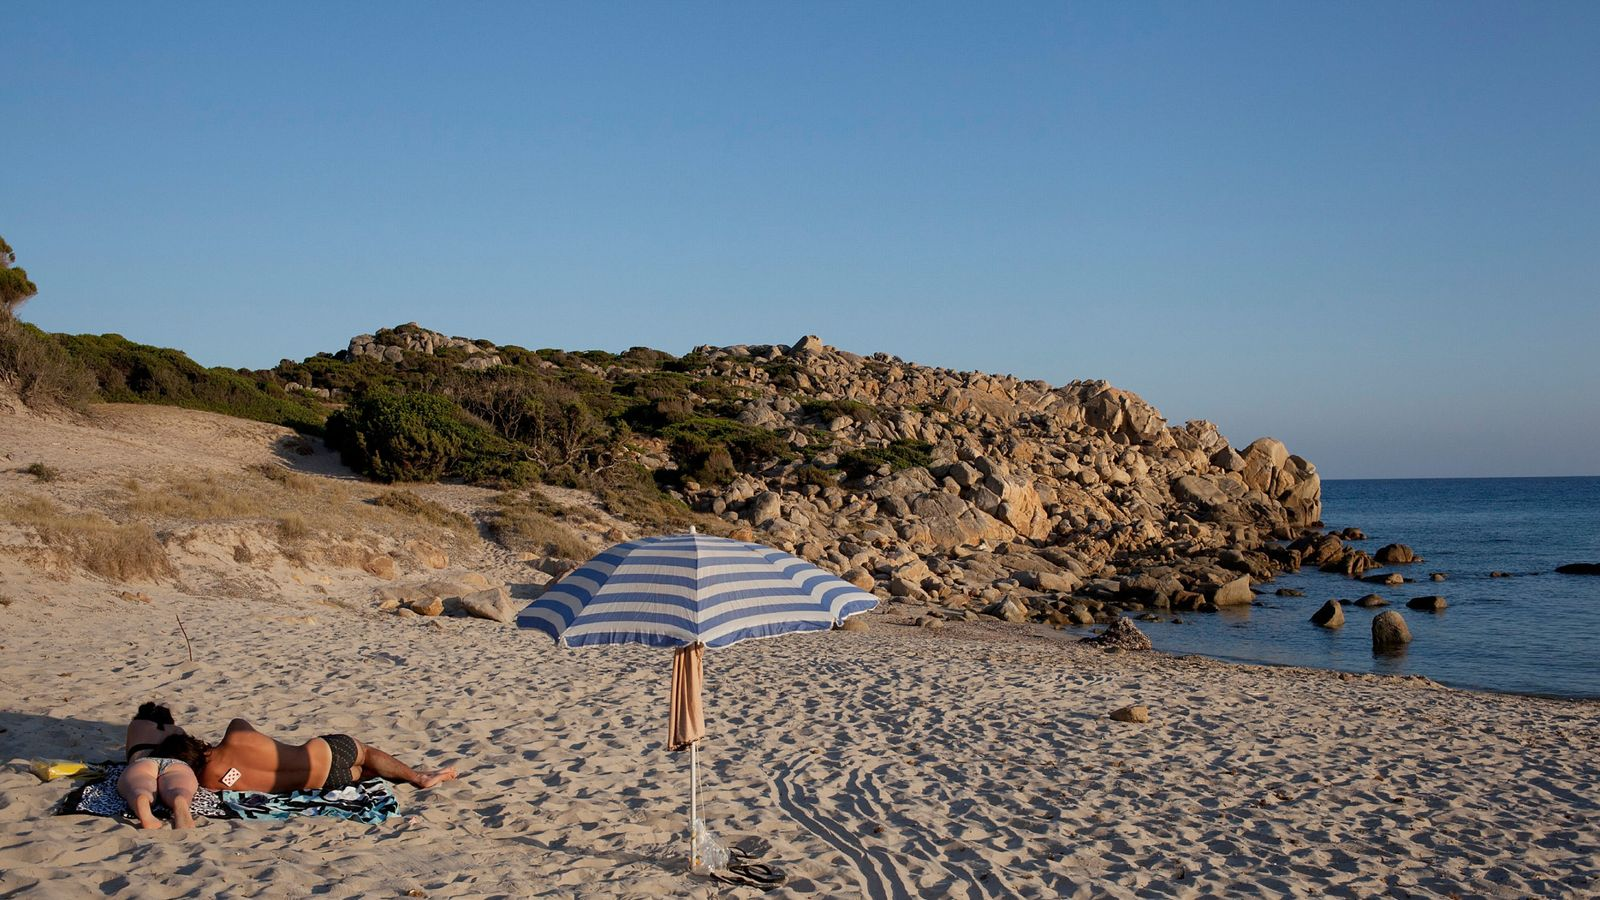 Tourists who took sand from Sardinian beach face jail